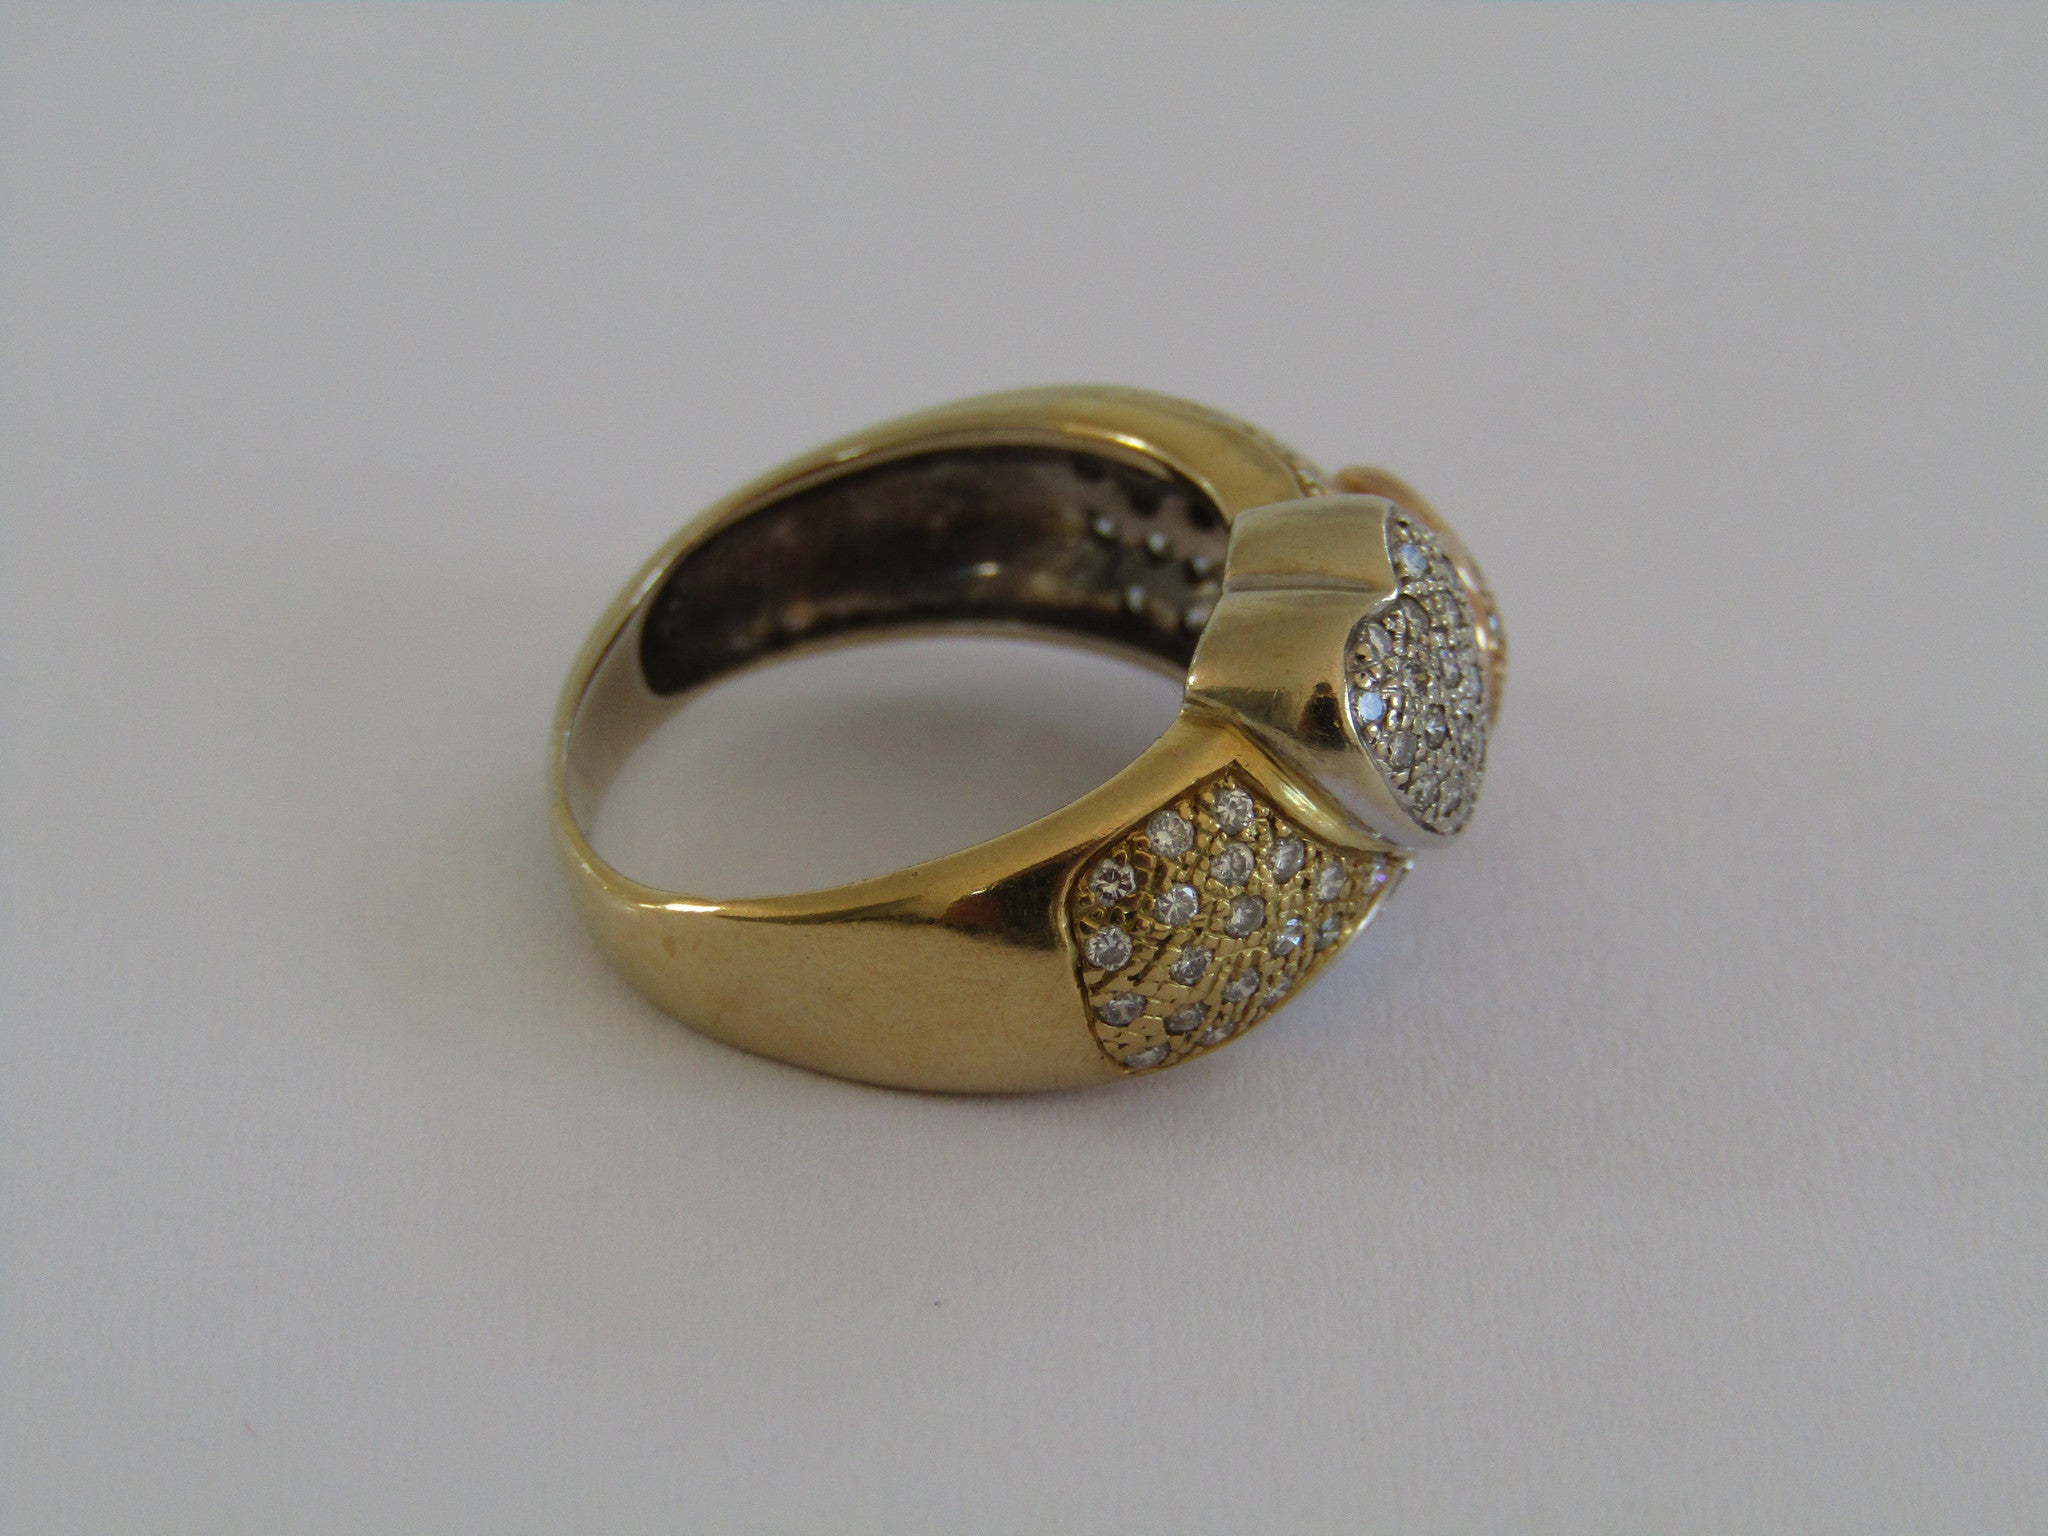 A 18kt gold diamond designer ring